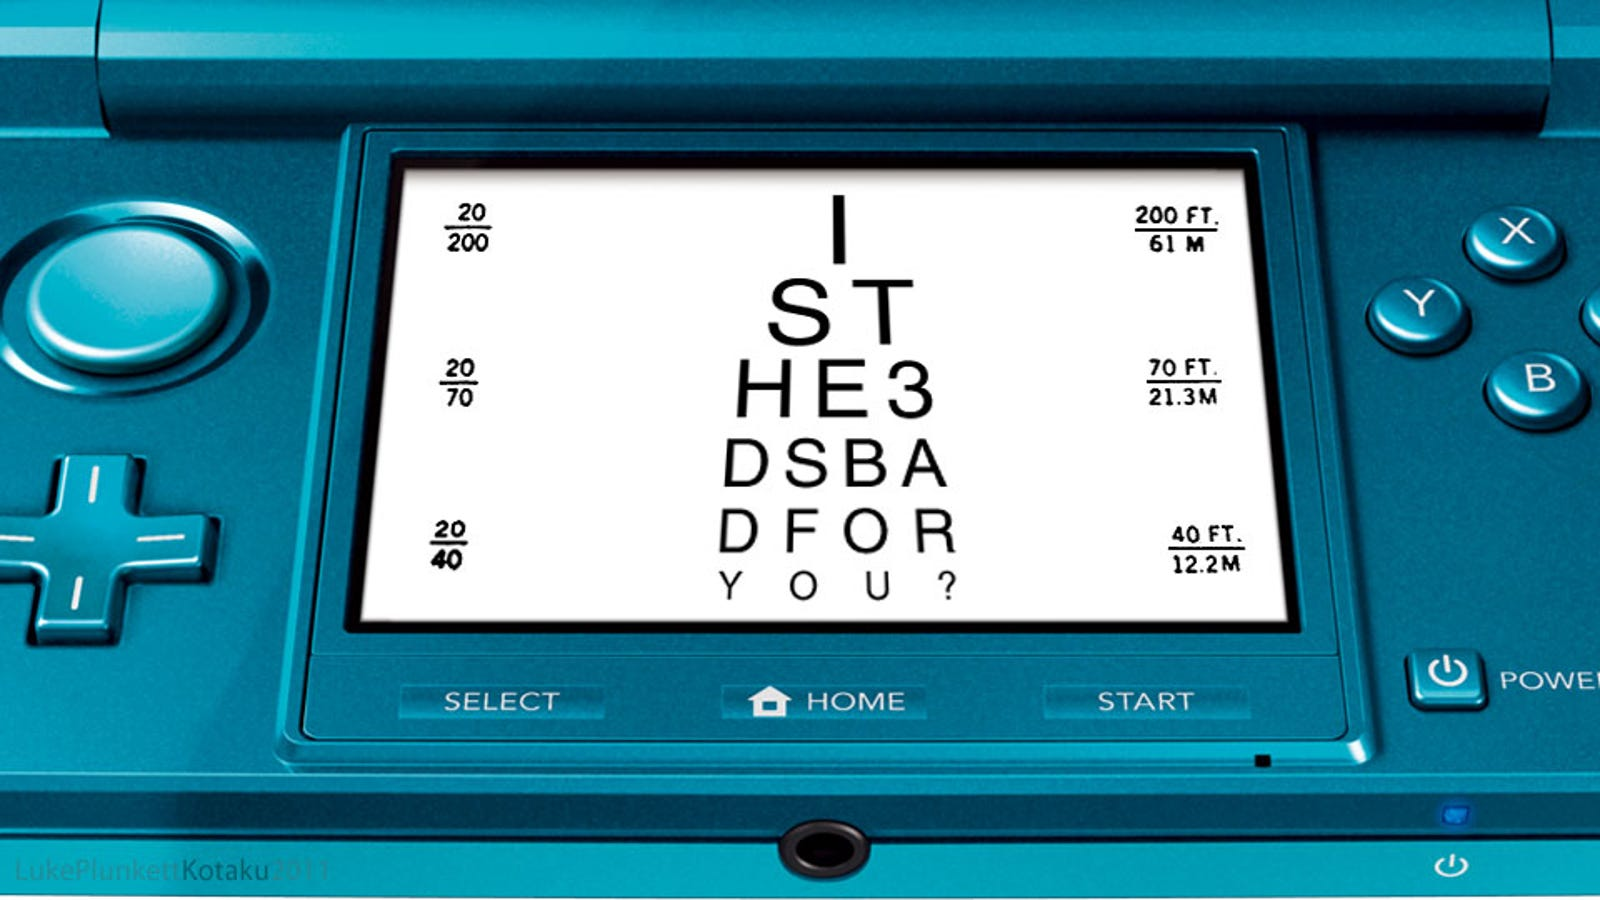 So I Took My 3DS To The Eye Doctor